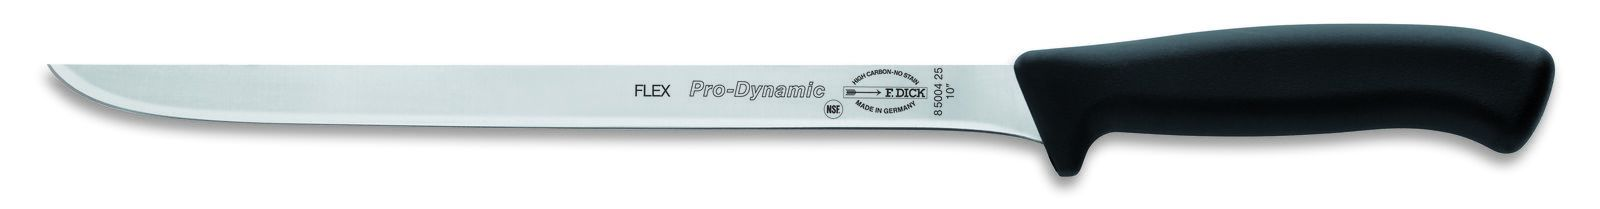 "F. Dick (8500425) 10"" Ham Knife, Flexible, ProDynamic-cityfoodequipment.com"